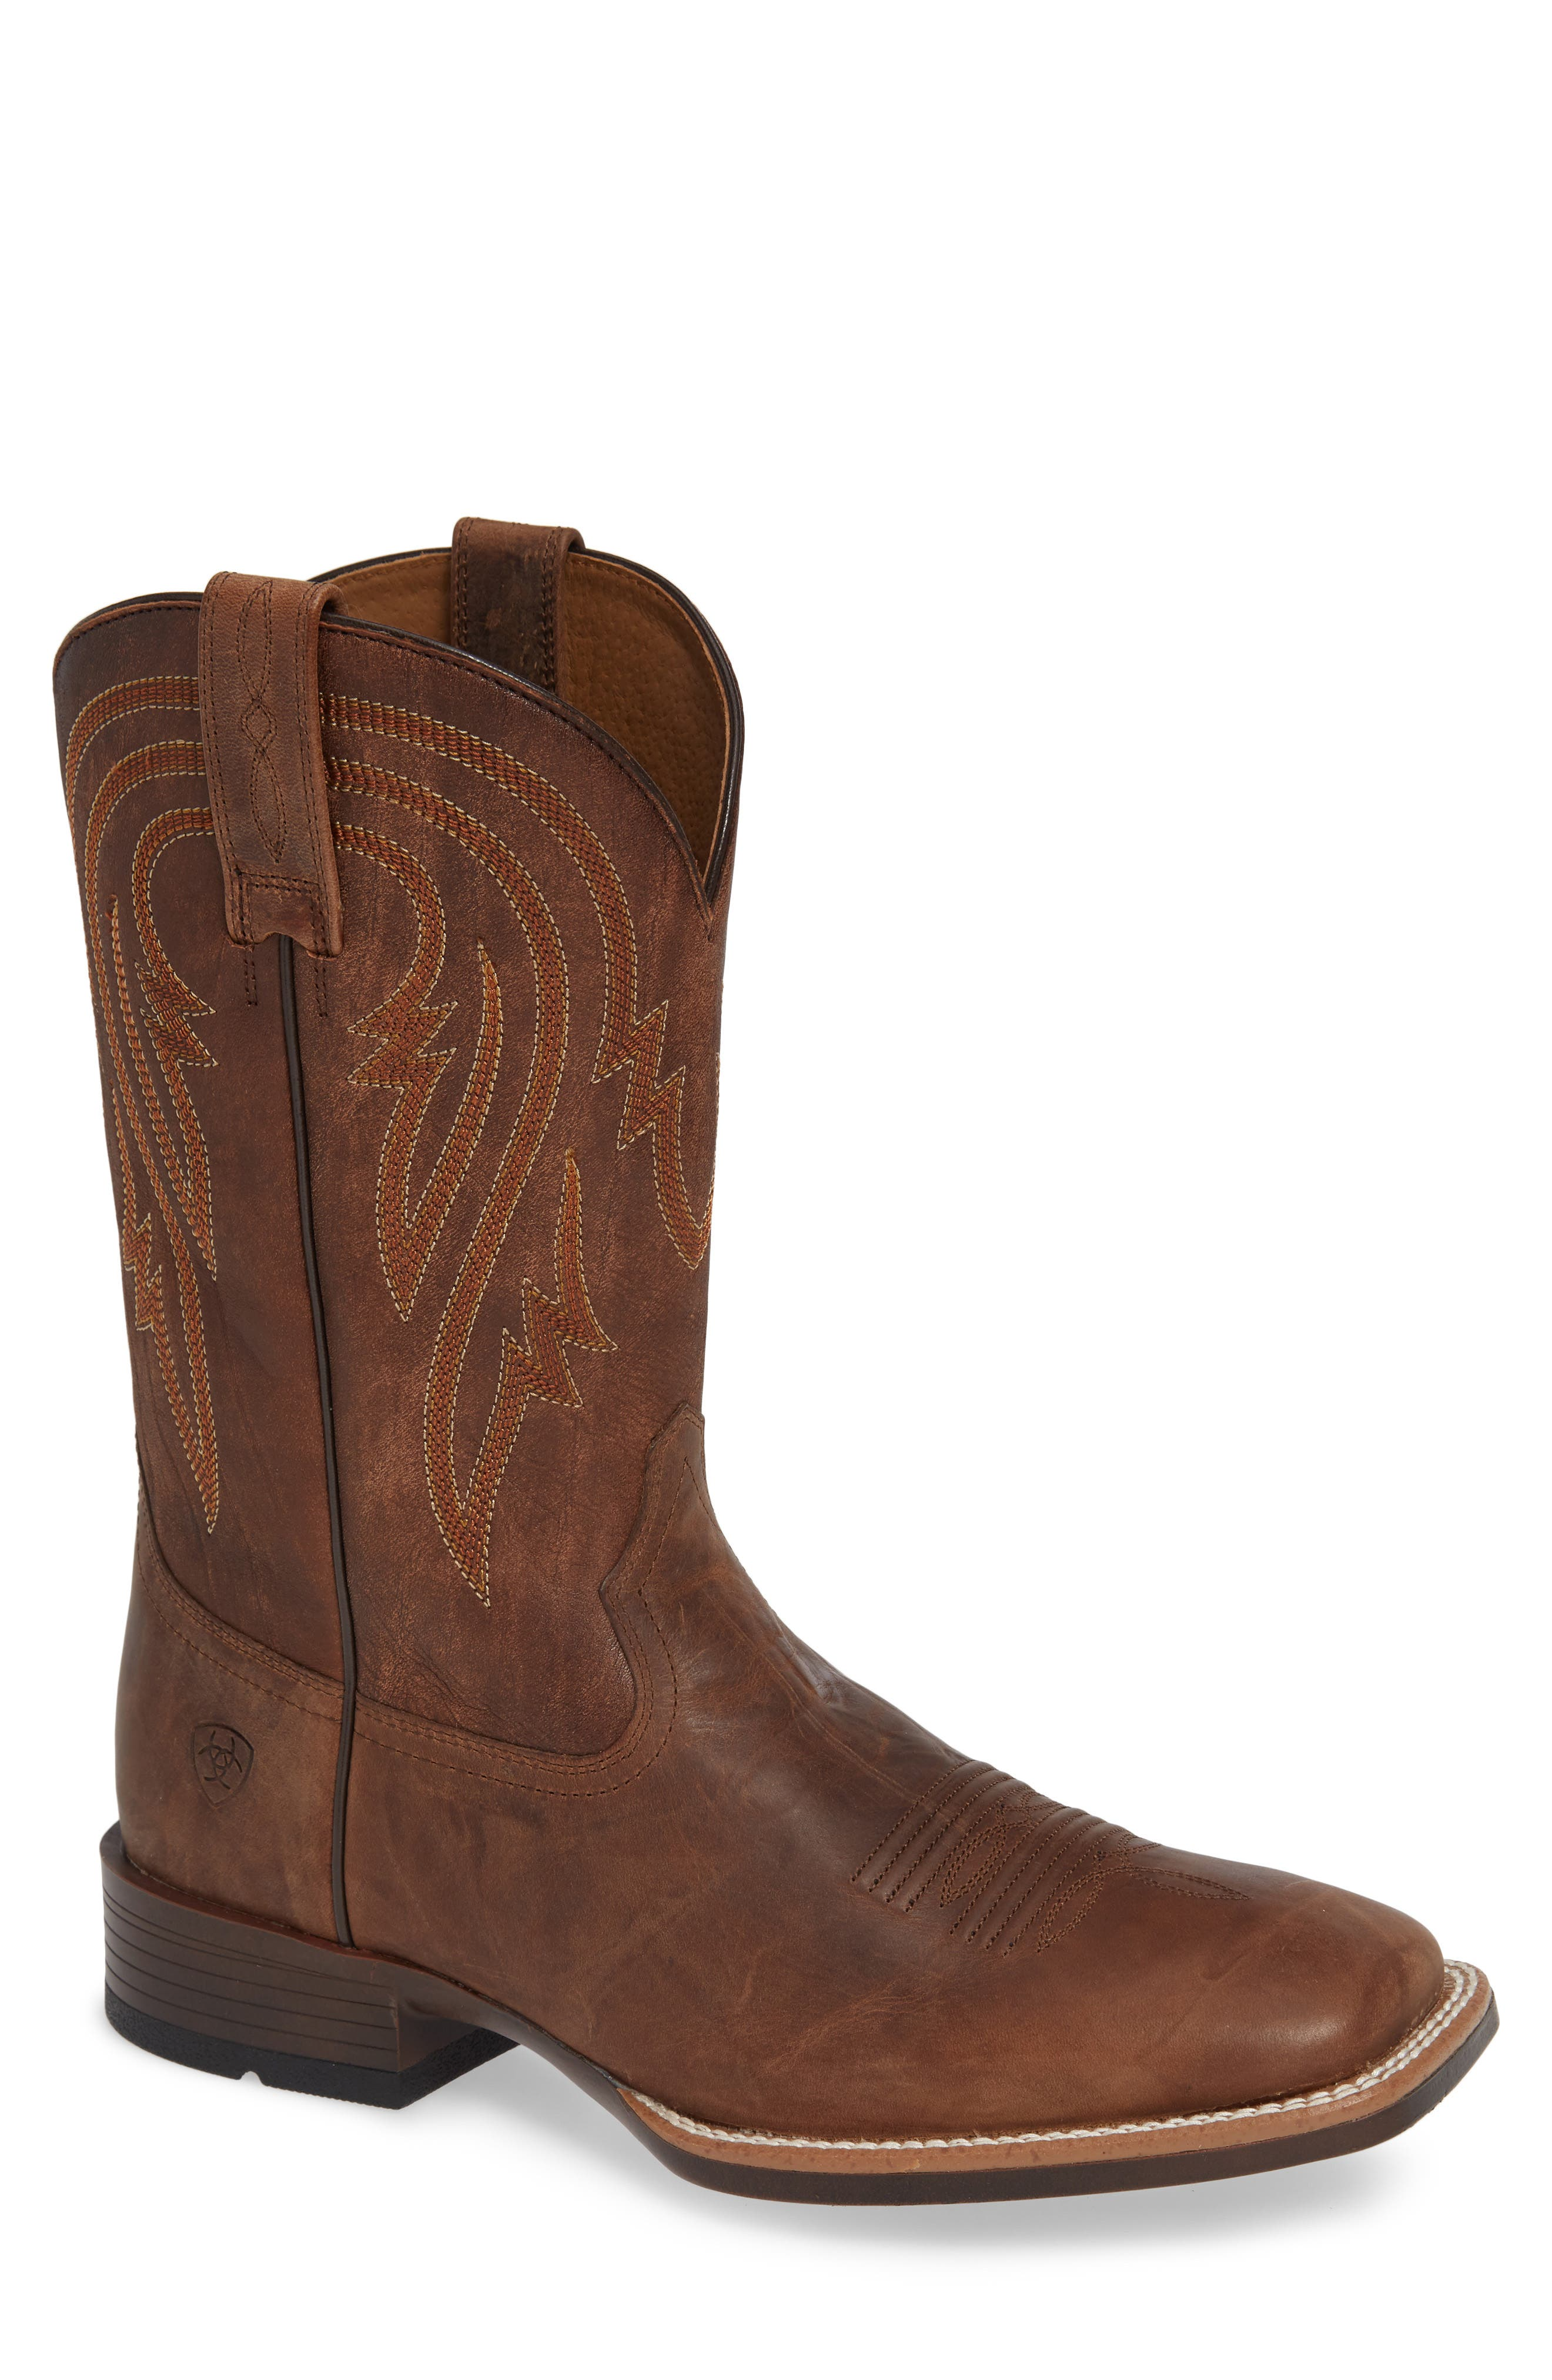 Ariat Plano Cowboy Boot W - Brown